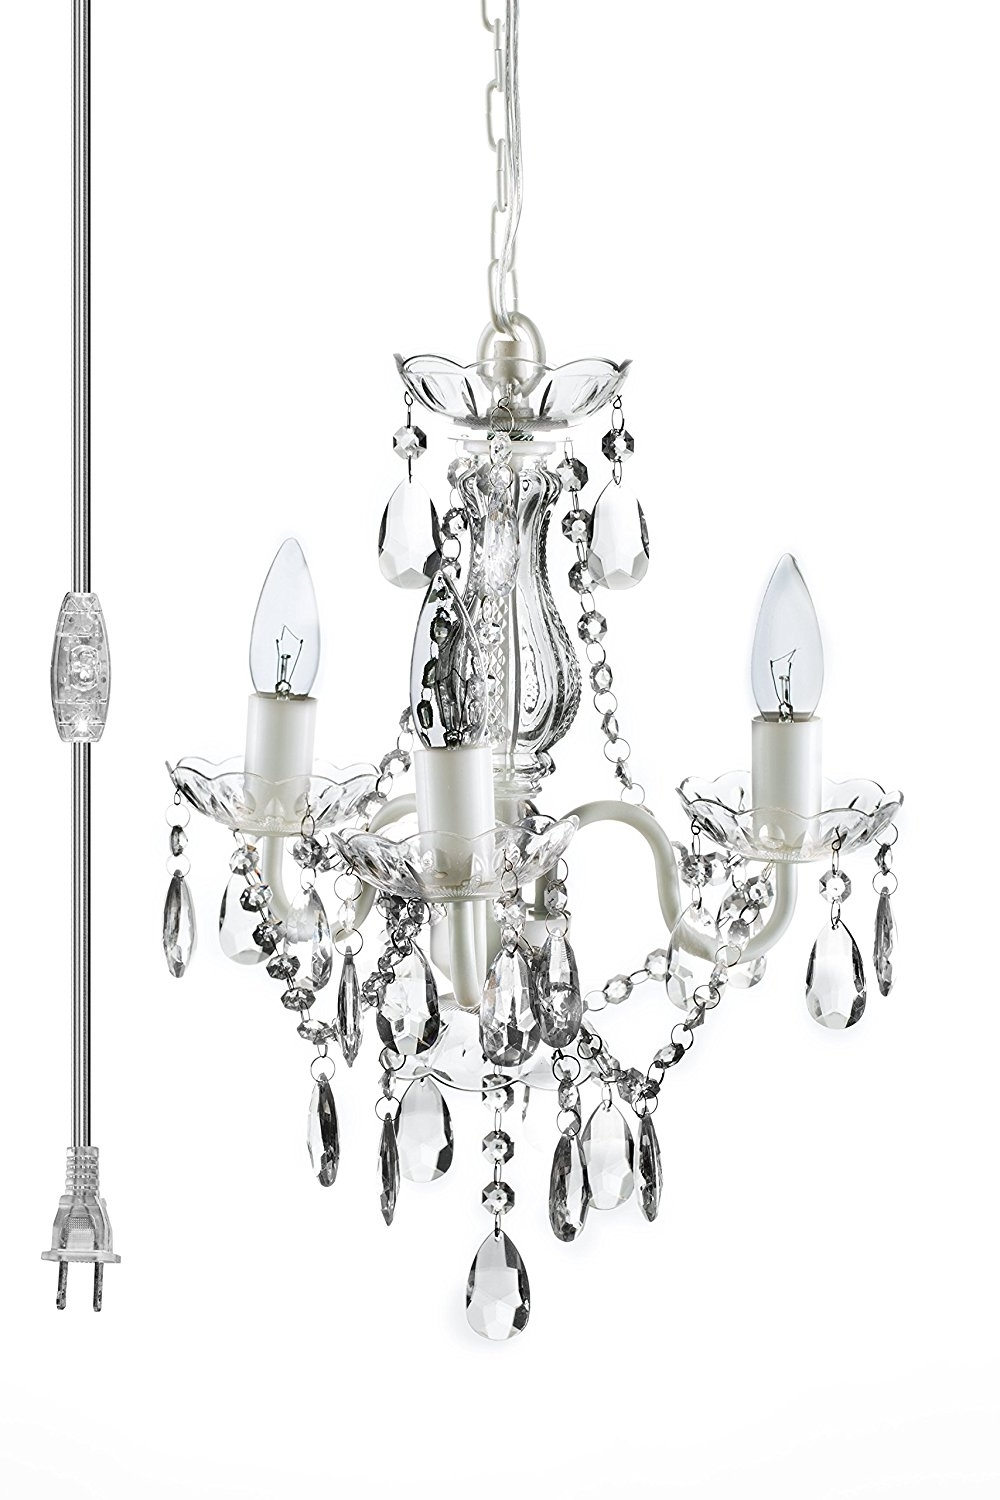 Newest Gypsy Chandeliers Intended For The Original Gypsy Color 3 Light Mini Plug In Crystal Chandelier For (View 9 of 15)